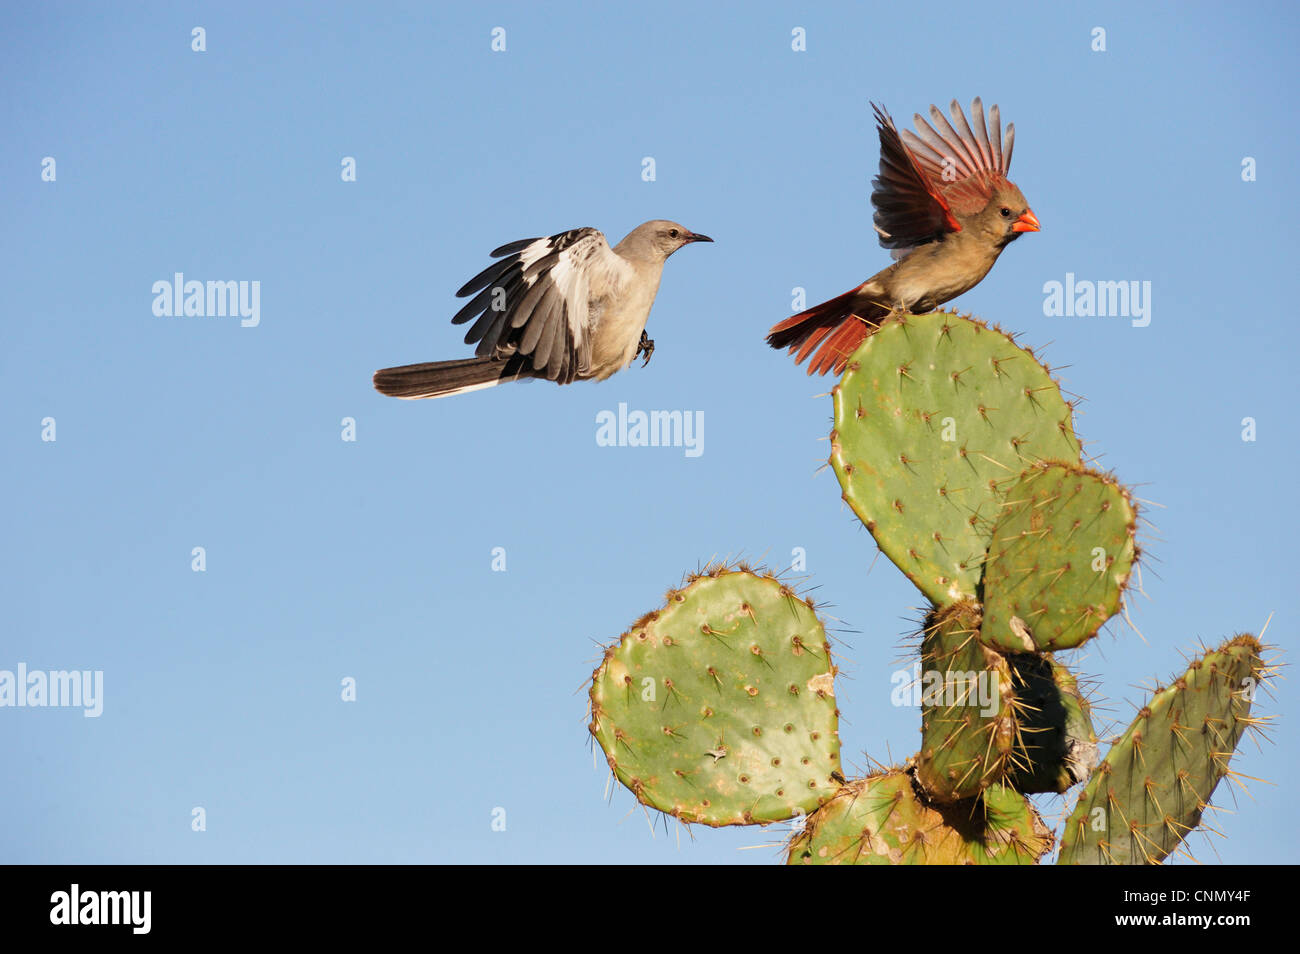 Northern Mockingbird (Mimus polyglottos), adult and Northern Cardinal (Cardinalis cardinalis) landing on Cactus, - Stock Image